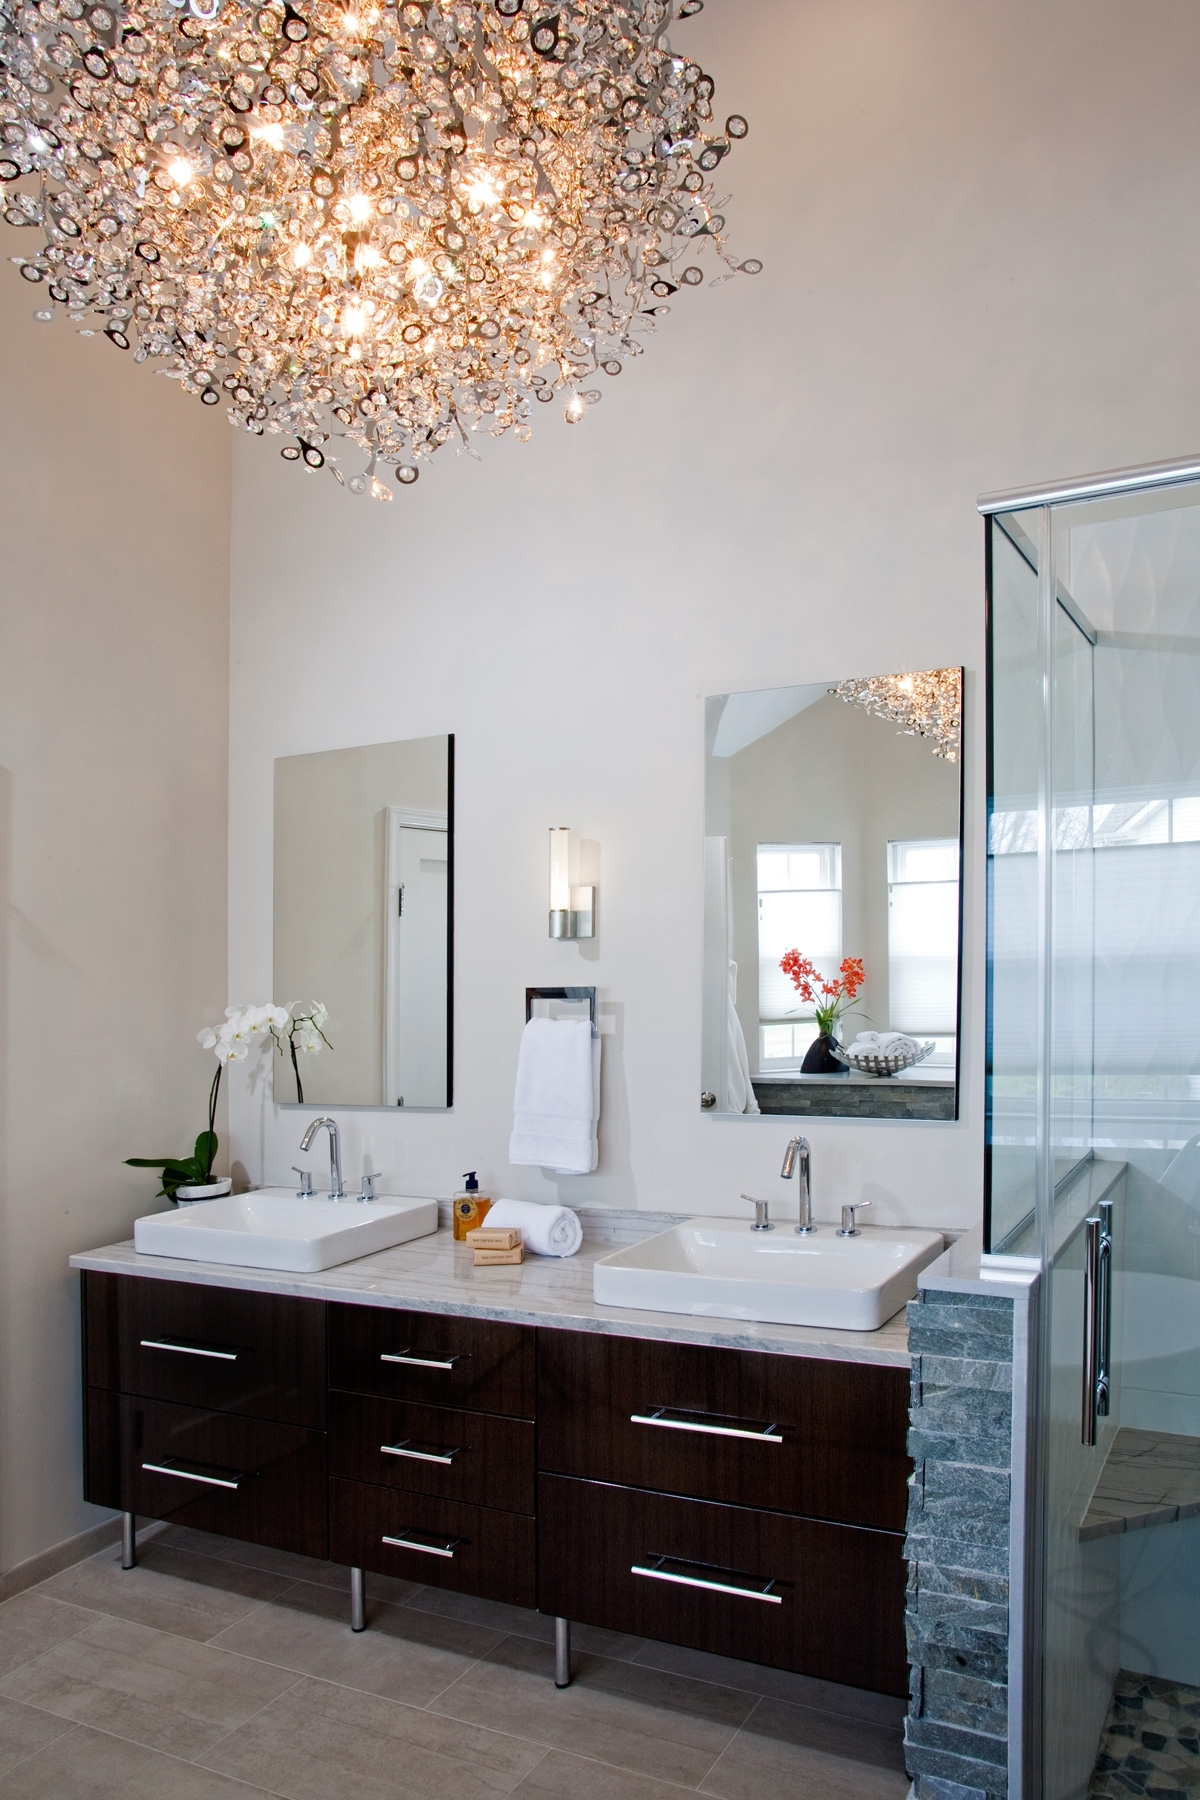 Htrenovations In Modern Bathroom Chandelier Lighting (View 5 of 15)